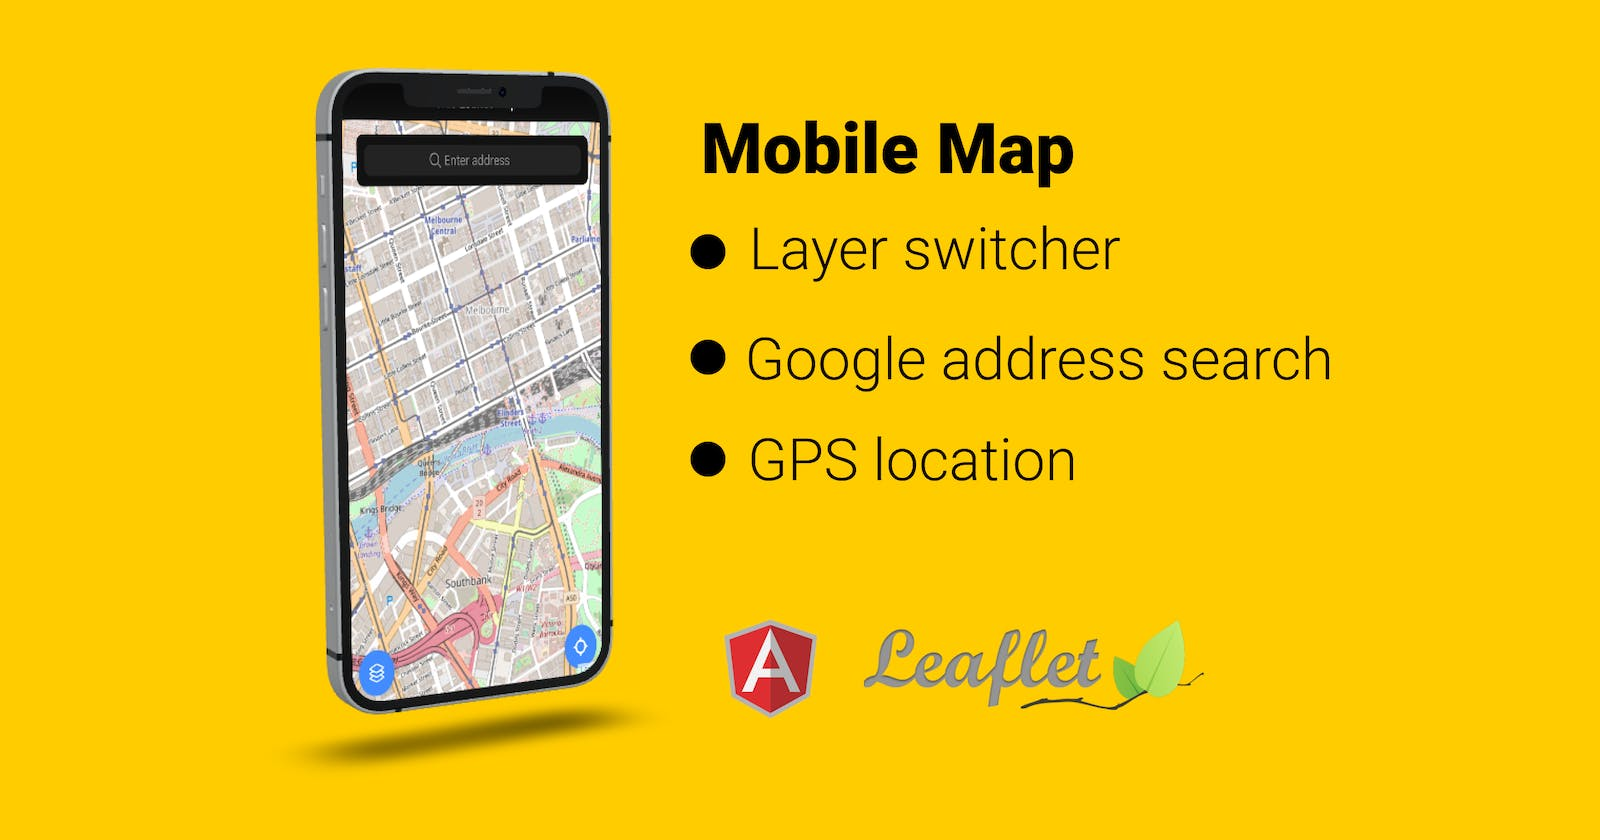 Build a PWA Map application using Ionic and Leaflet 🗺 🧭